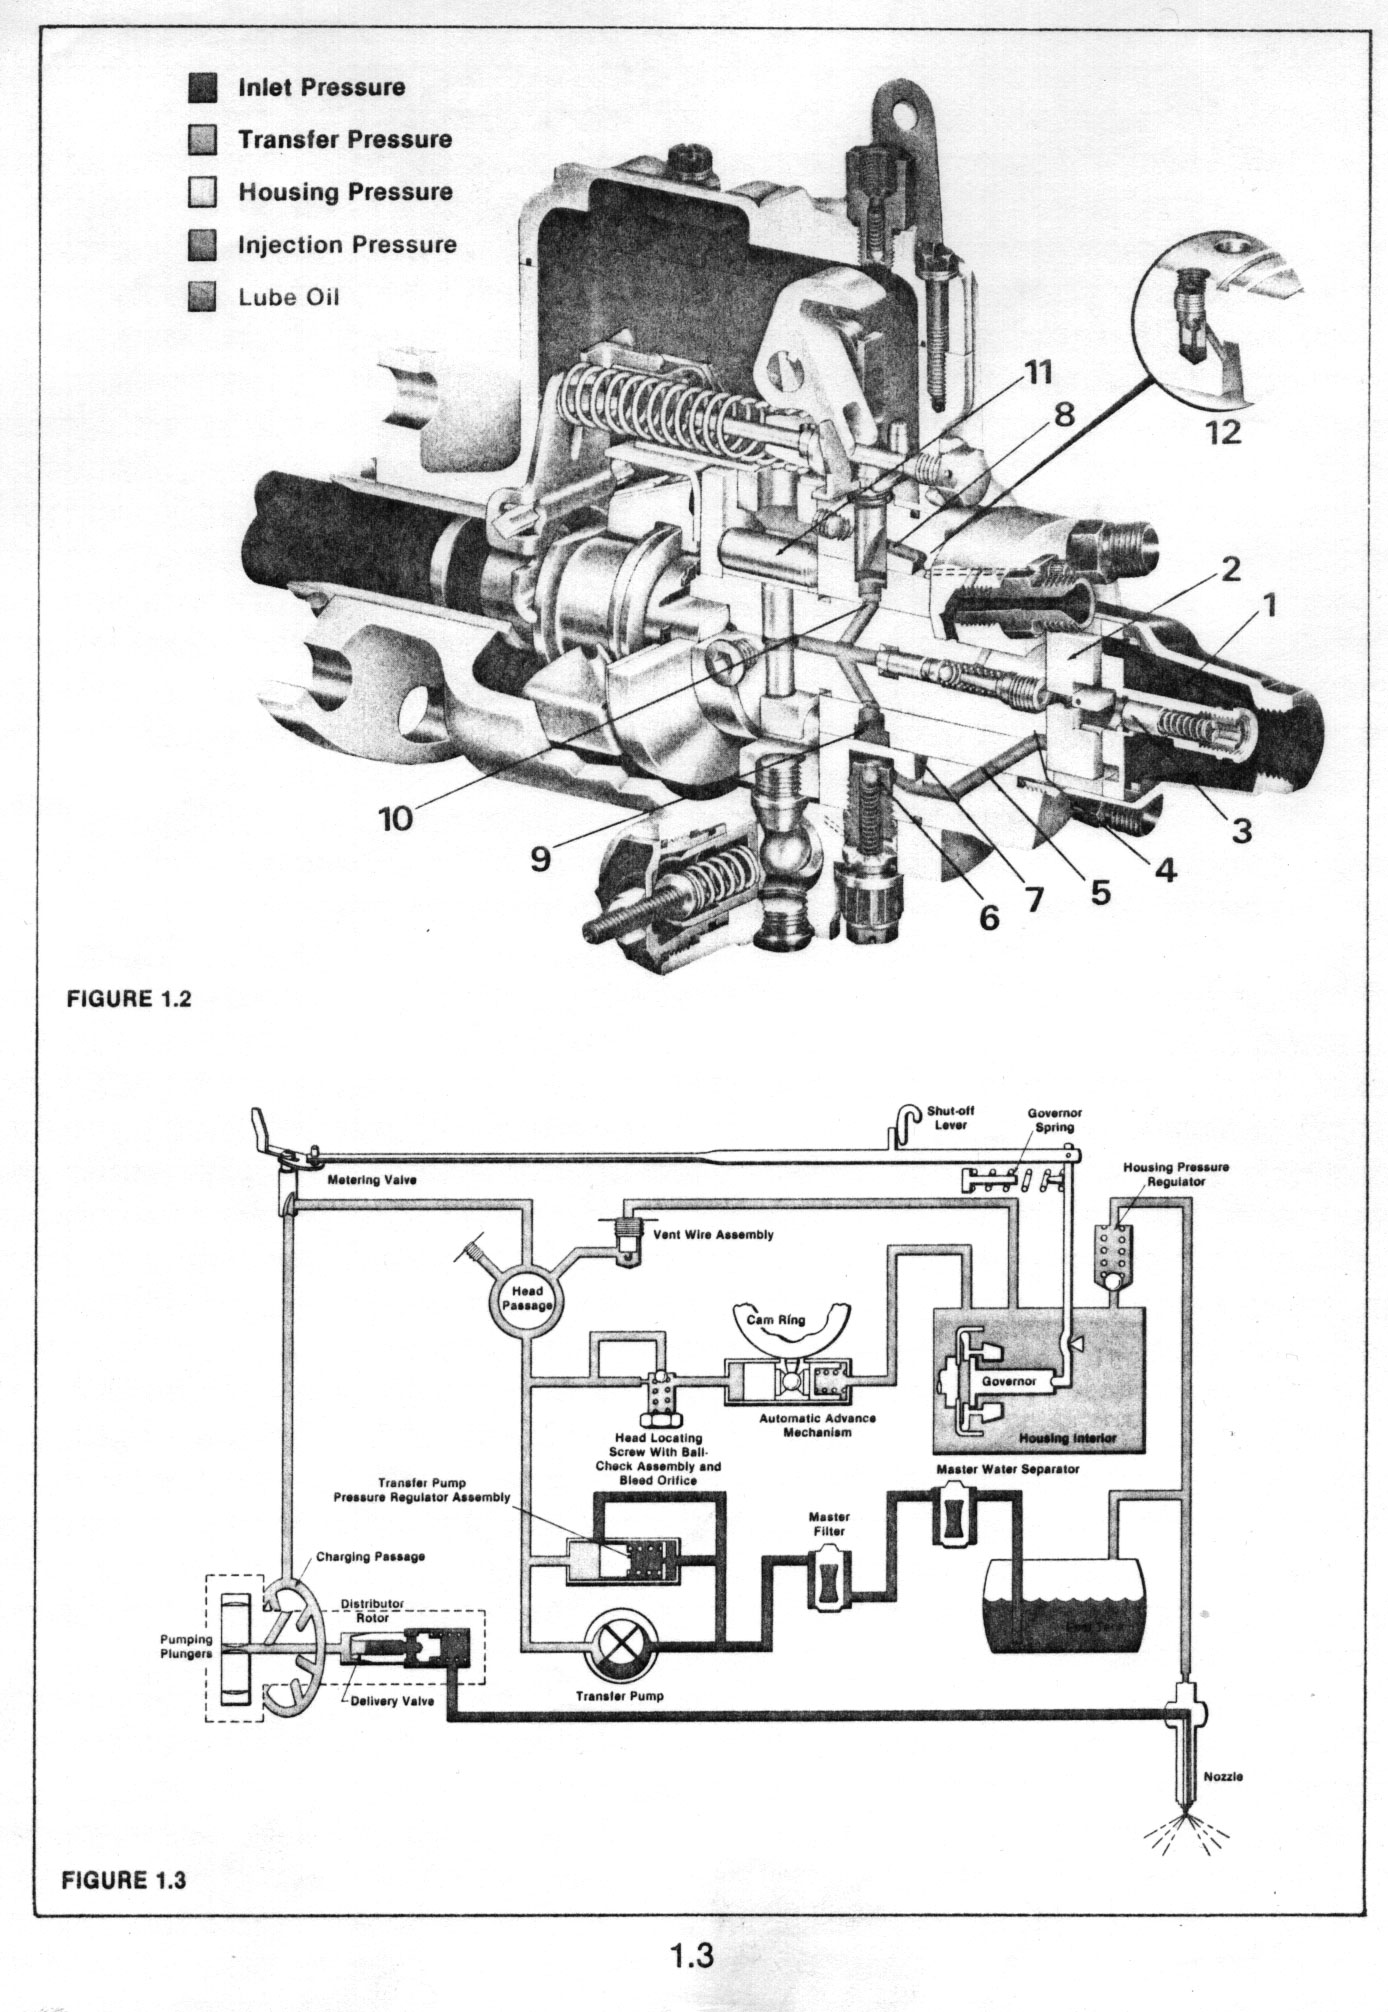 hight resolution of ford simms diesel injector pump diagram imageresizertool com lucas cav injection pump diagram lucas cav injection